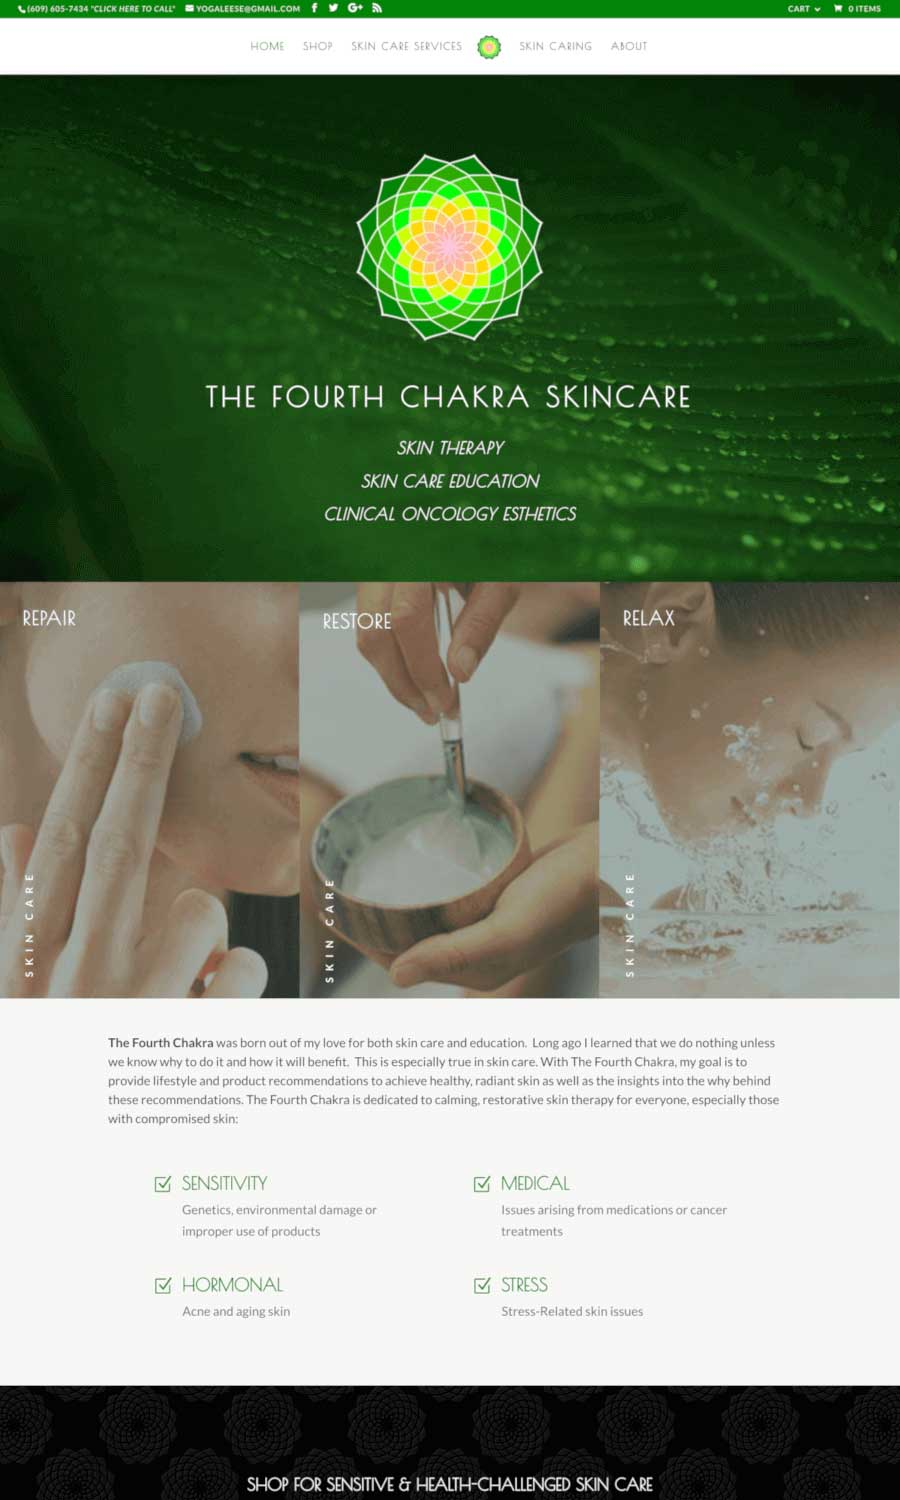 The Fourth Chakra landing page